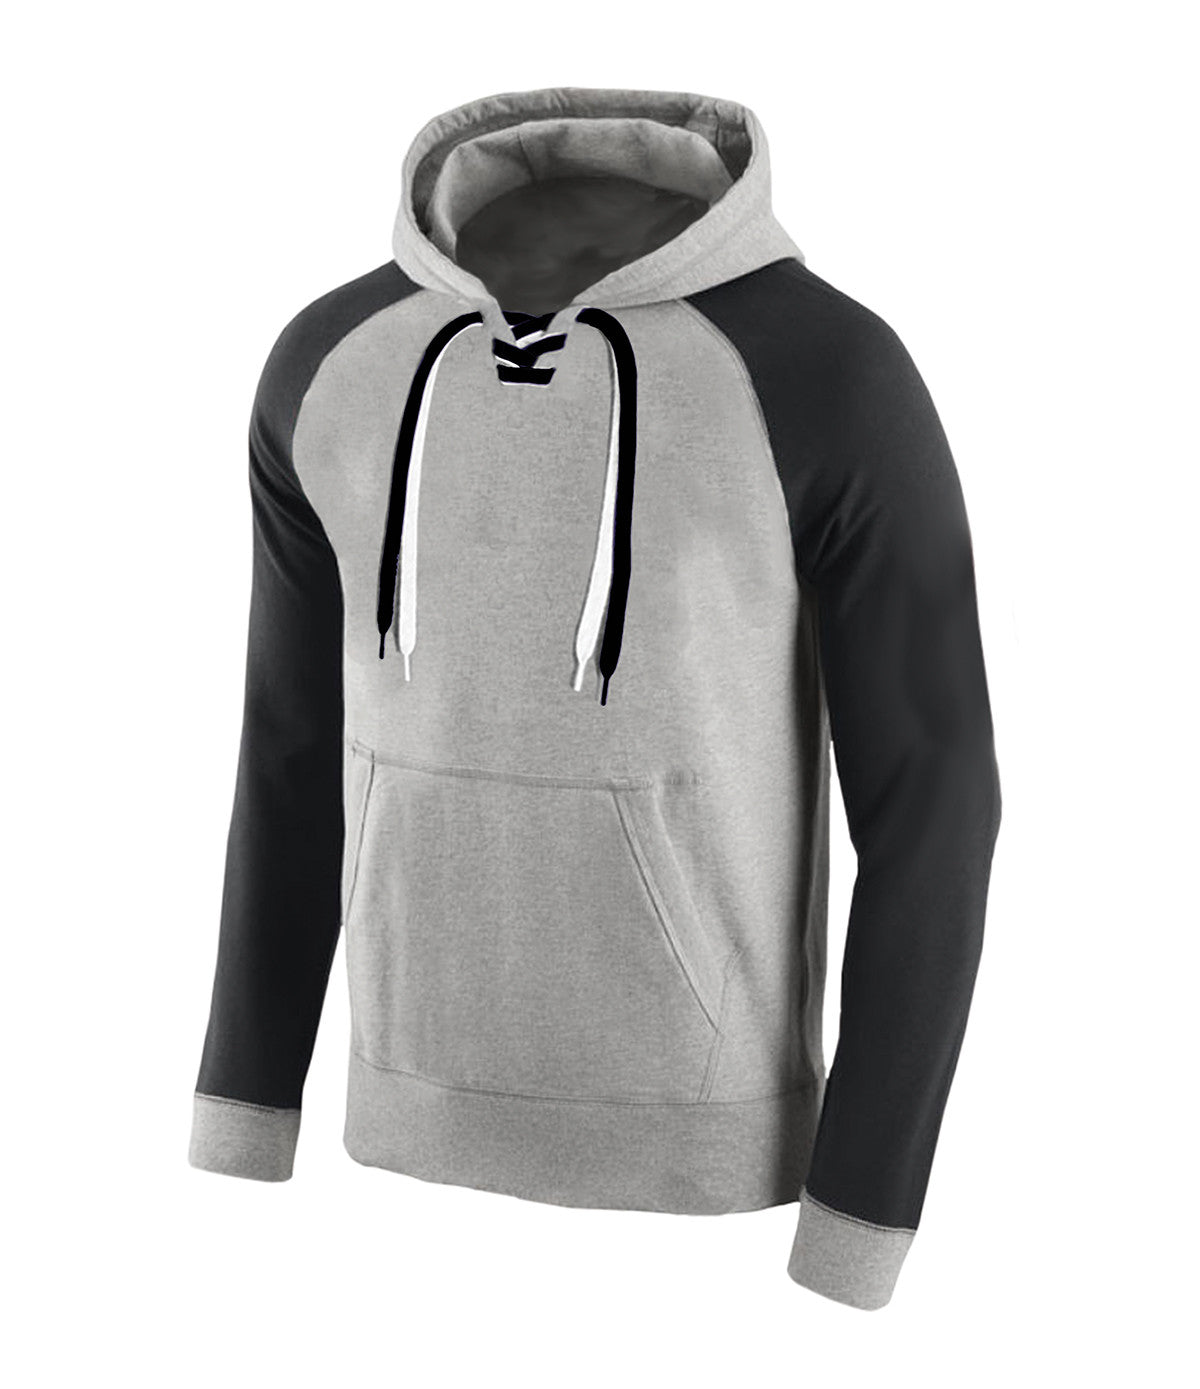 Lace Up Hooded Sweatshirt